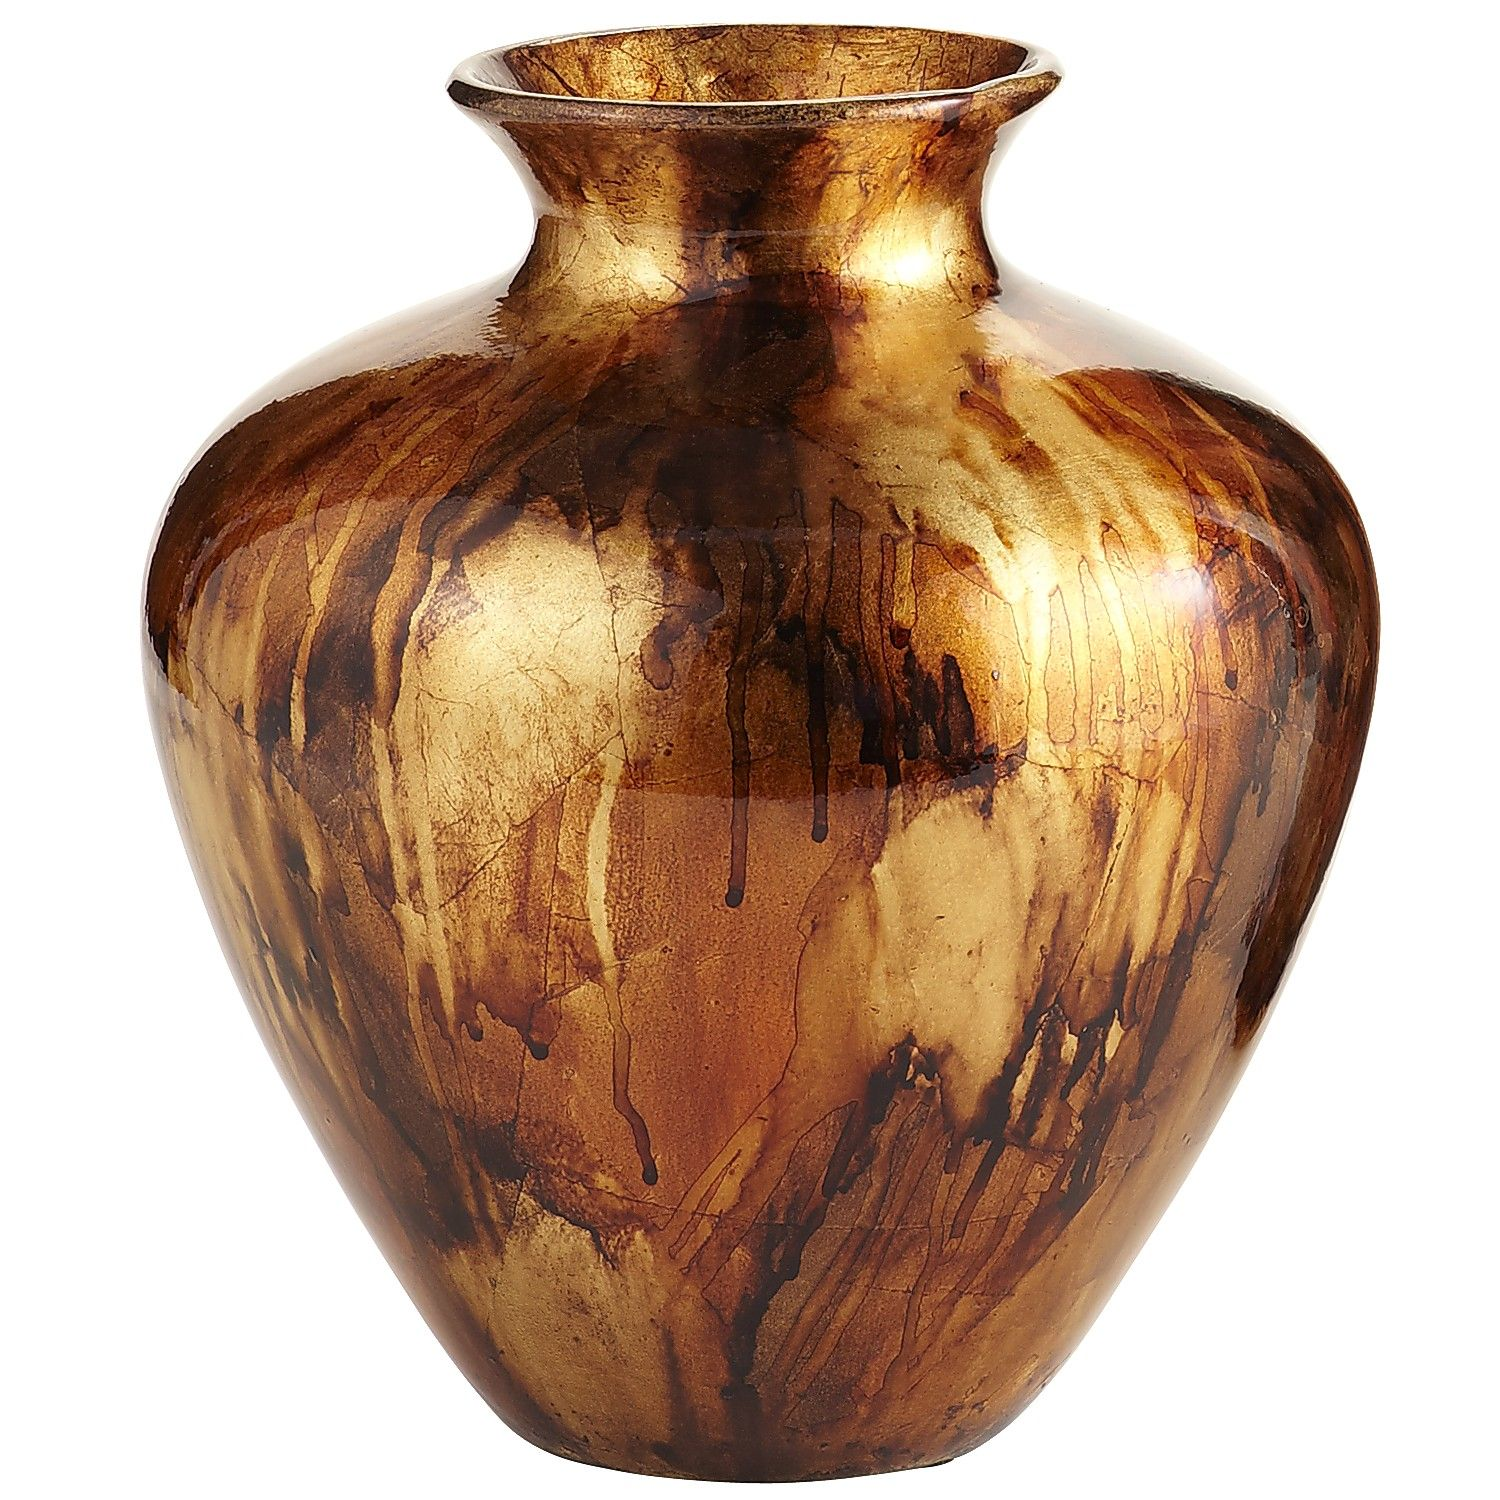 One day at a time peir 1 import knock off vase peir 1 import knock off vase reviewsmspy